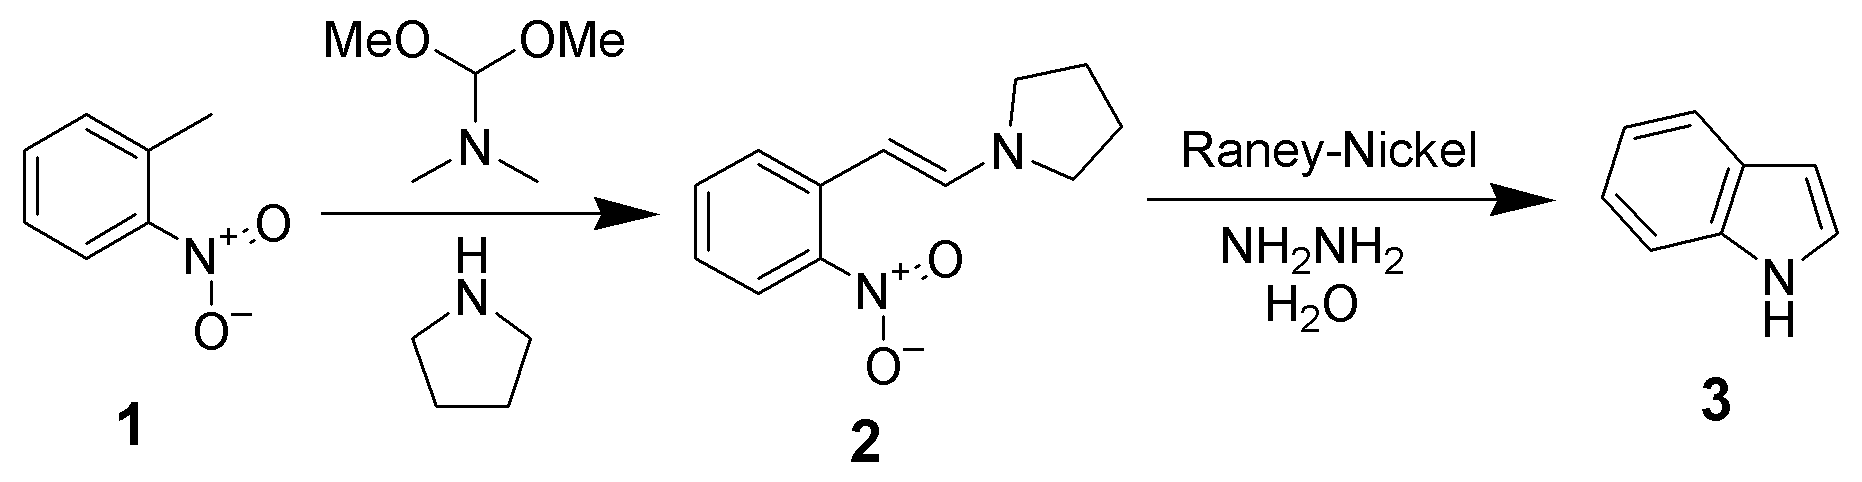 File:Leimgruber-Batcho Indole Scheme.png - Wikipedia, the free ...